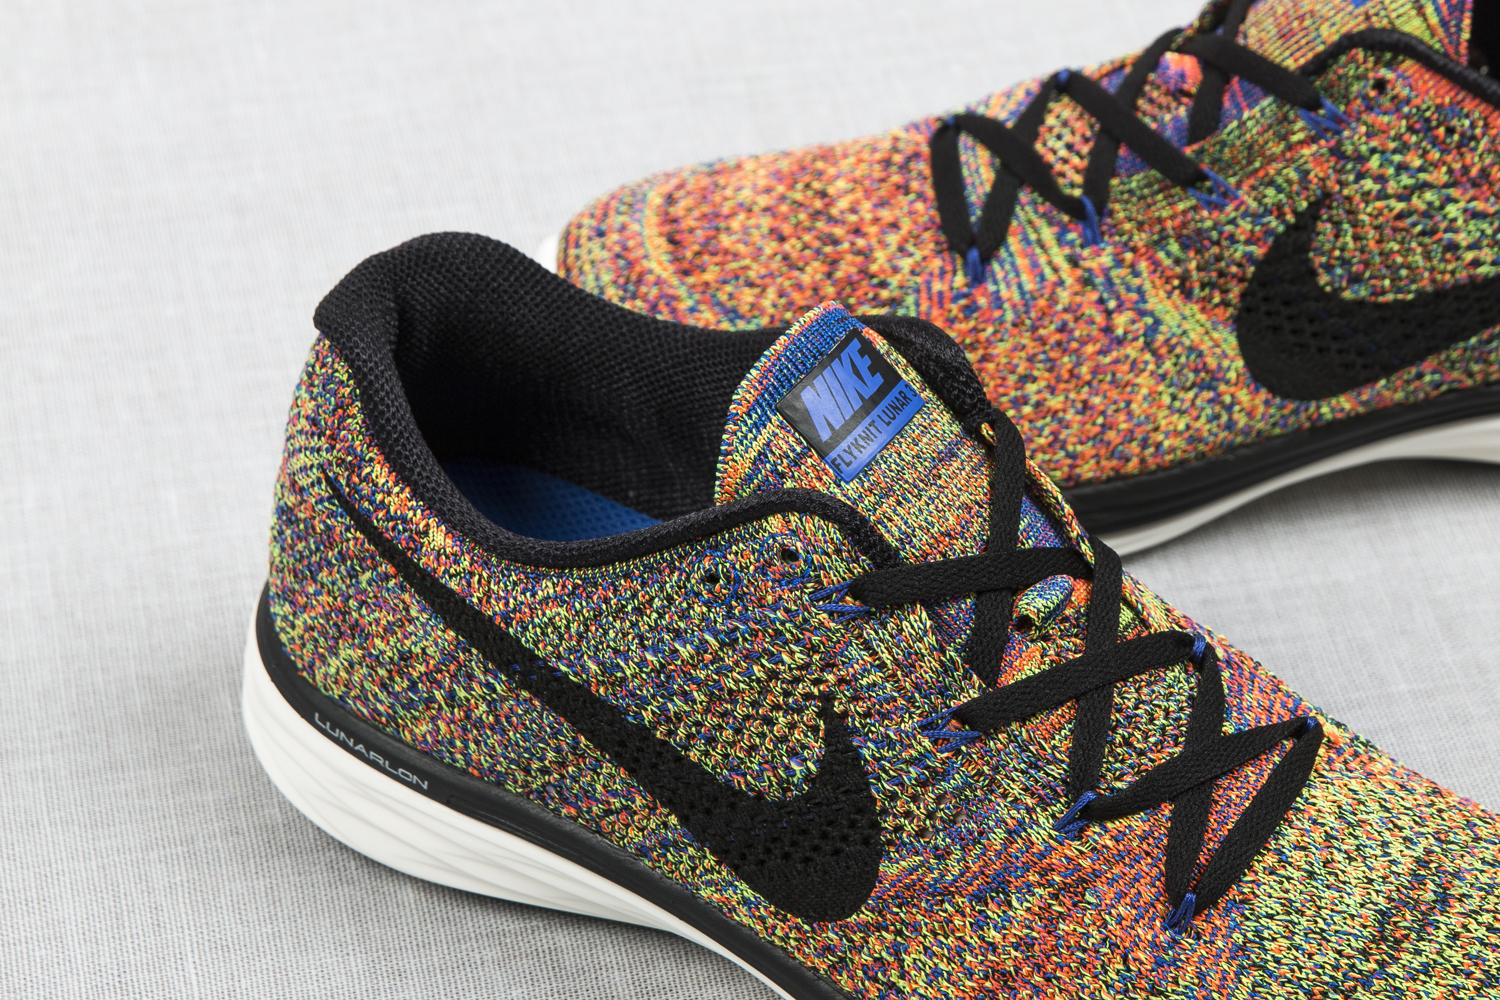 separation shoes db80e 673ab Nike Brings Multicolor to Flyknit Lunar 3s | Sole Collector